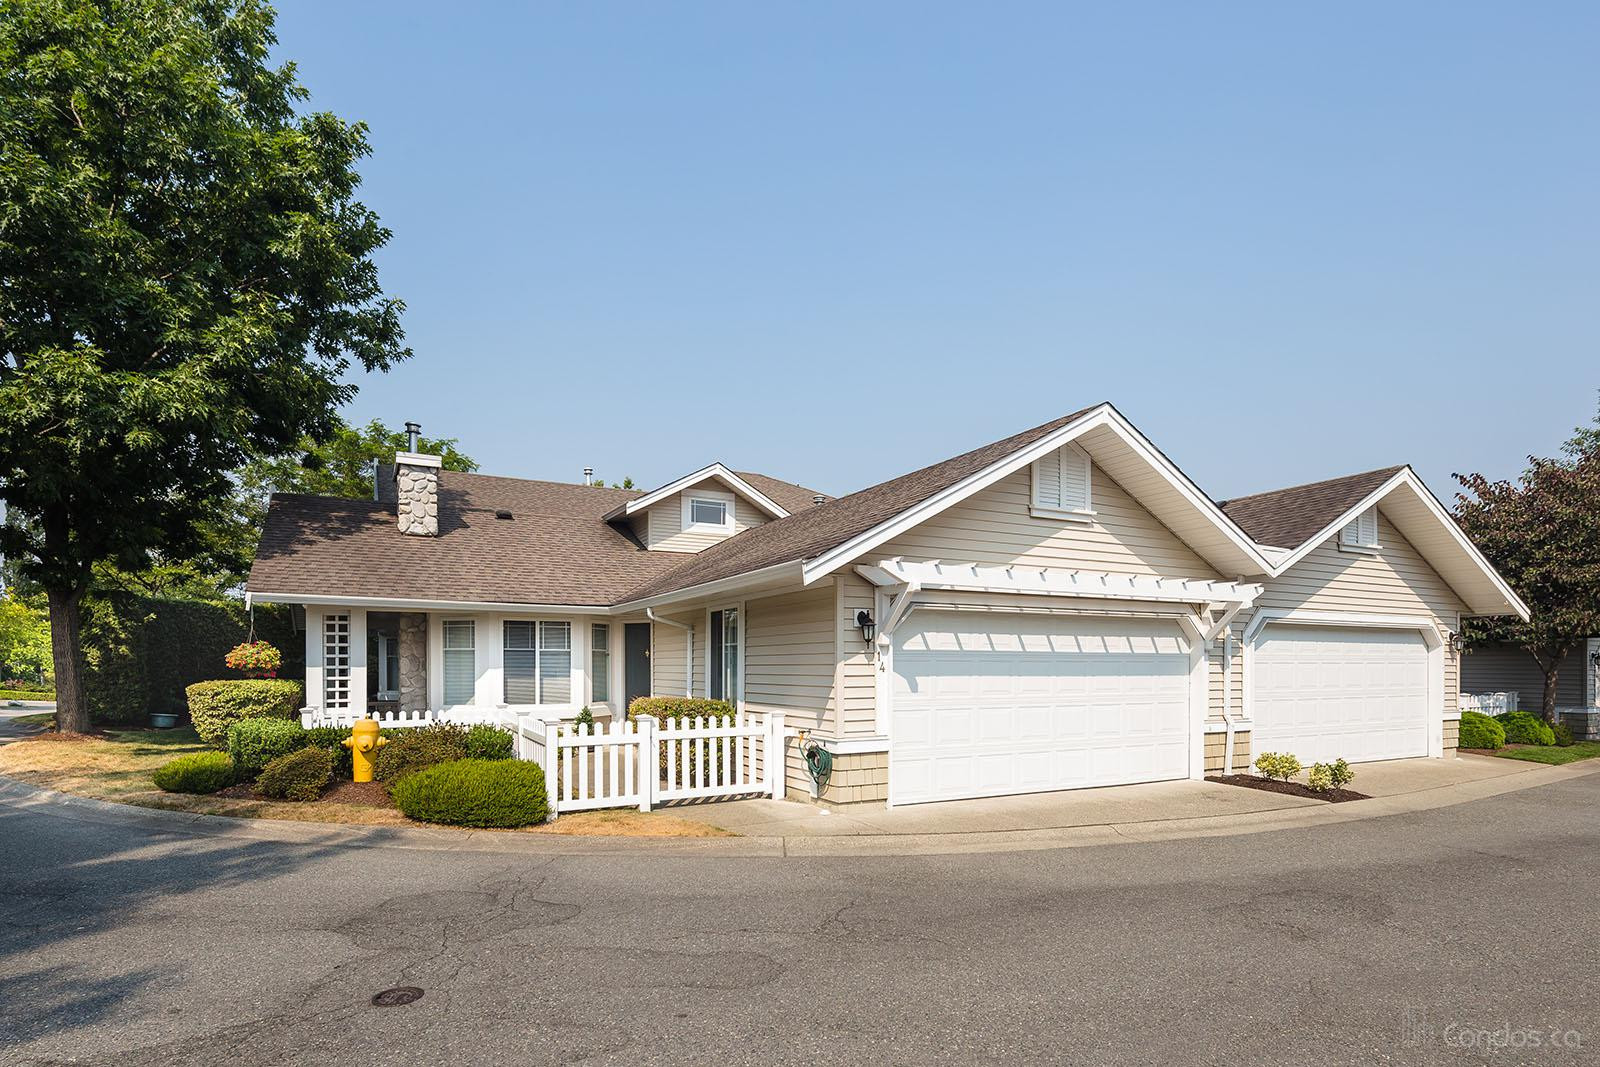 Turnberry at 6488 168 St, Surrey 1